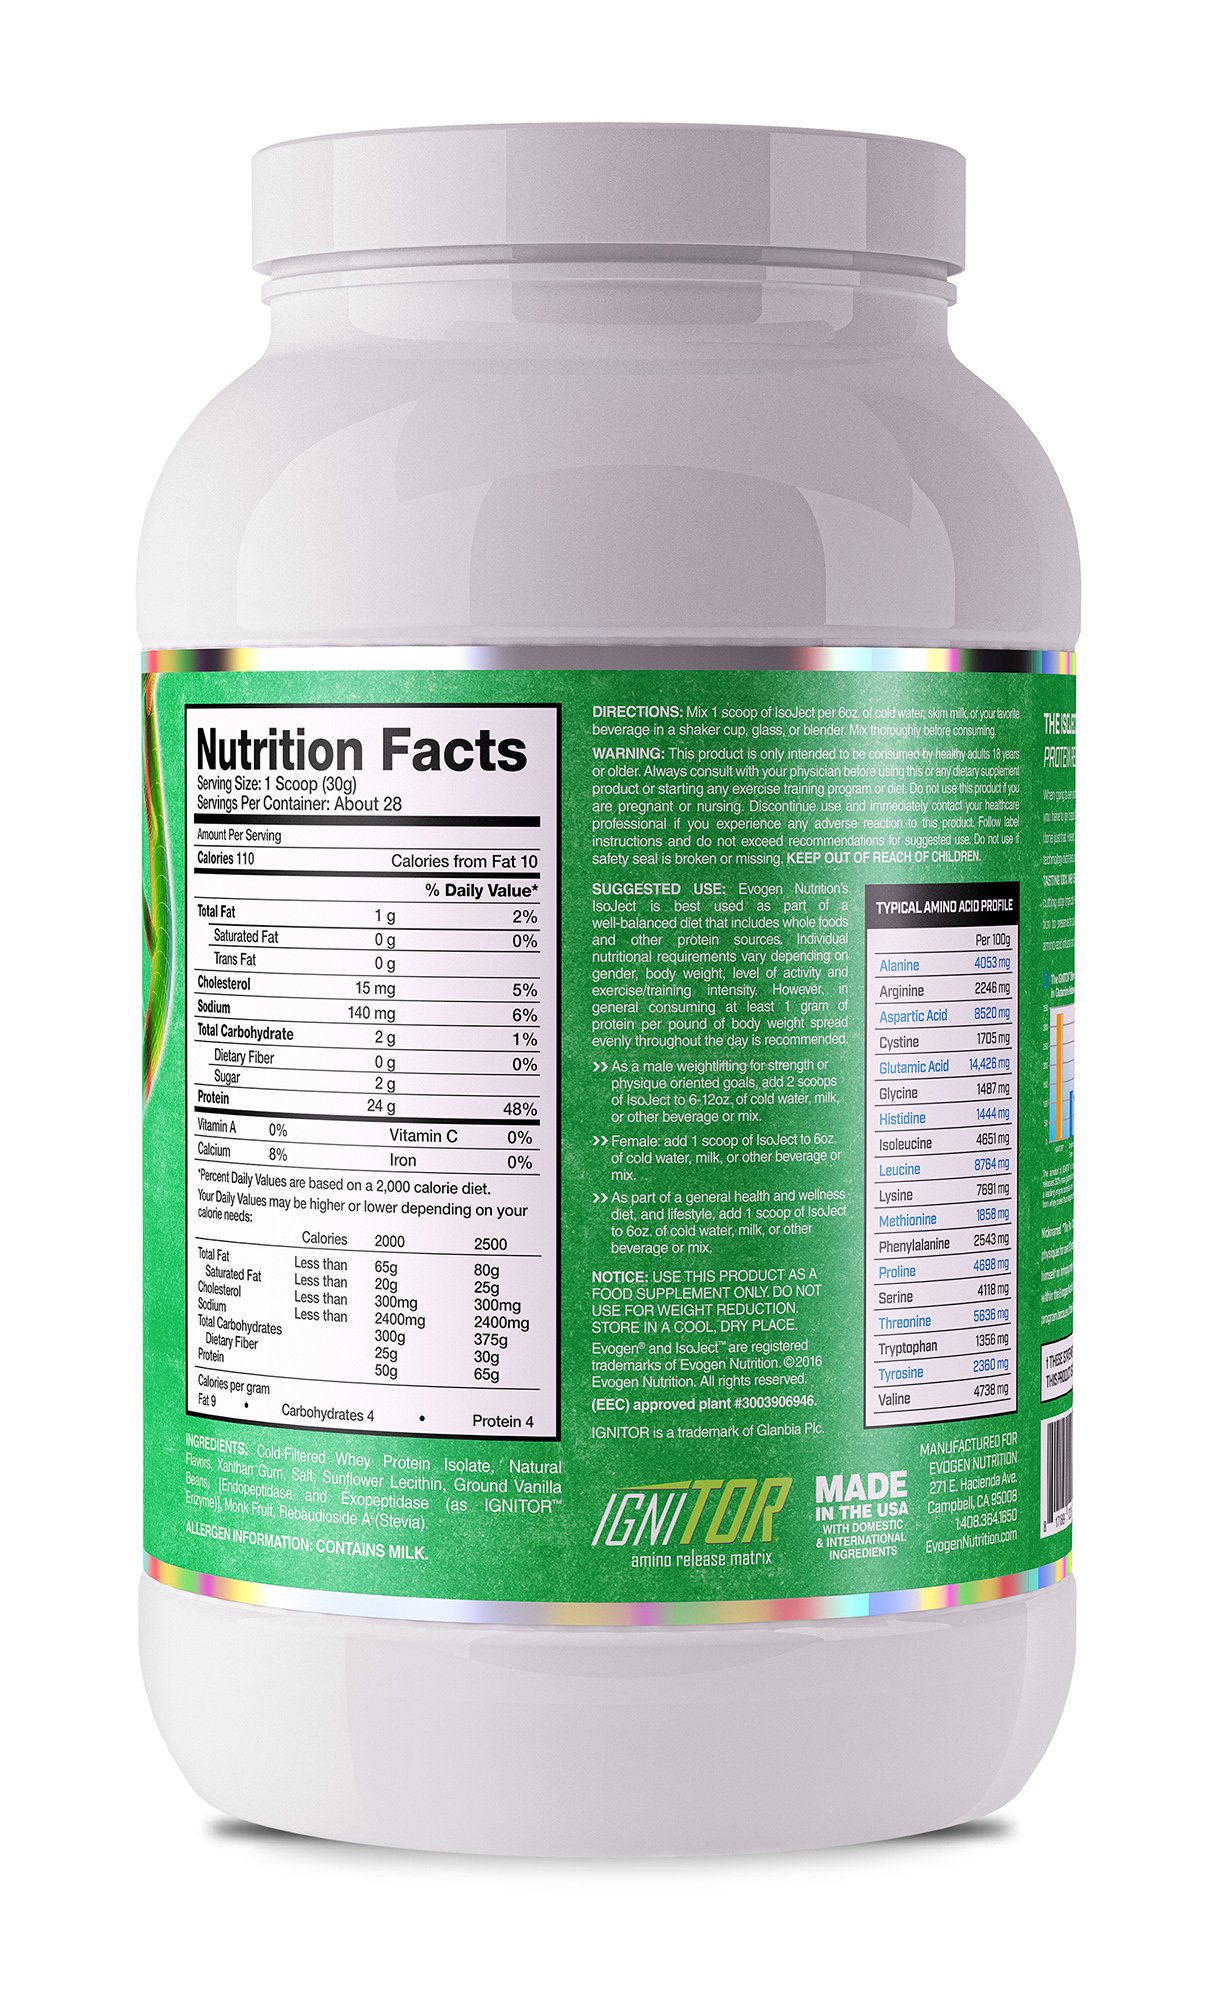 Evogen Isoject Naturals   Premium Whey Isolate w/Digestive Enzymes   28 Servings   Vanilla by Evogen Nutrition (Image #2)